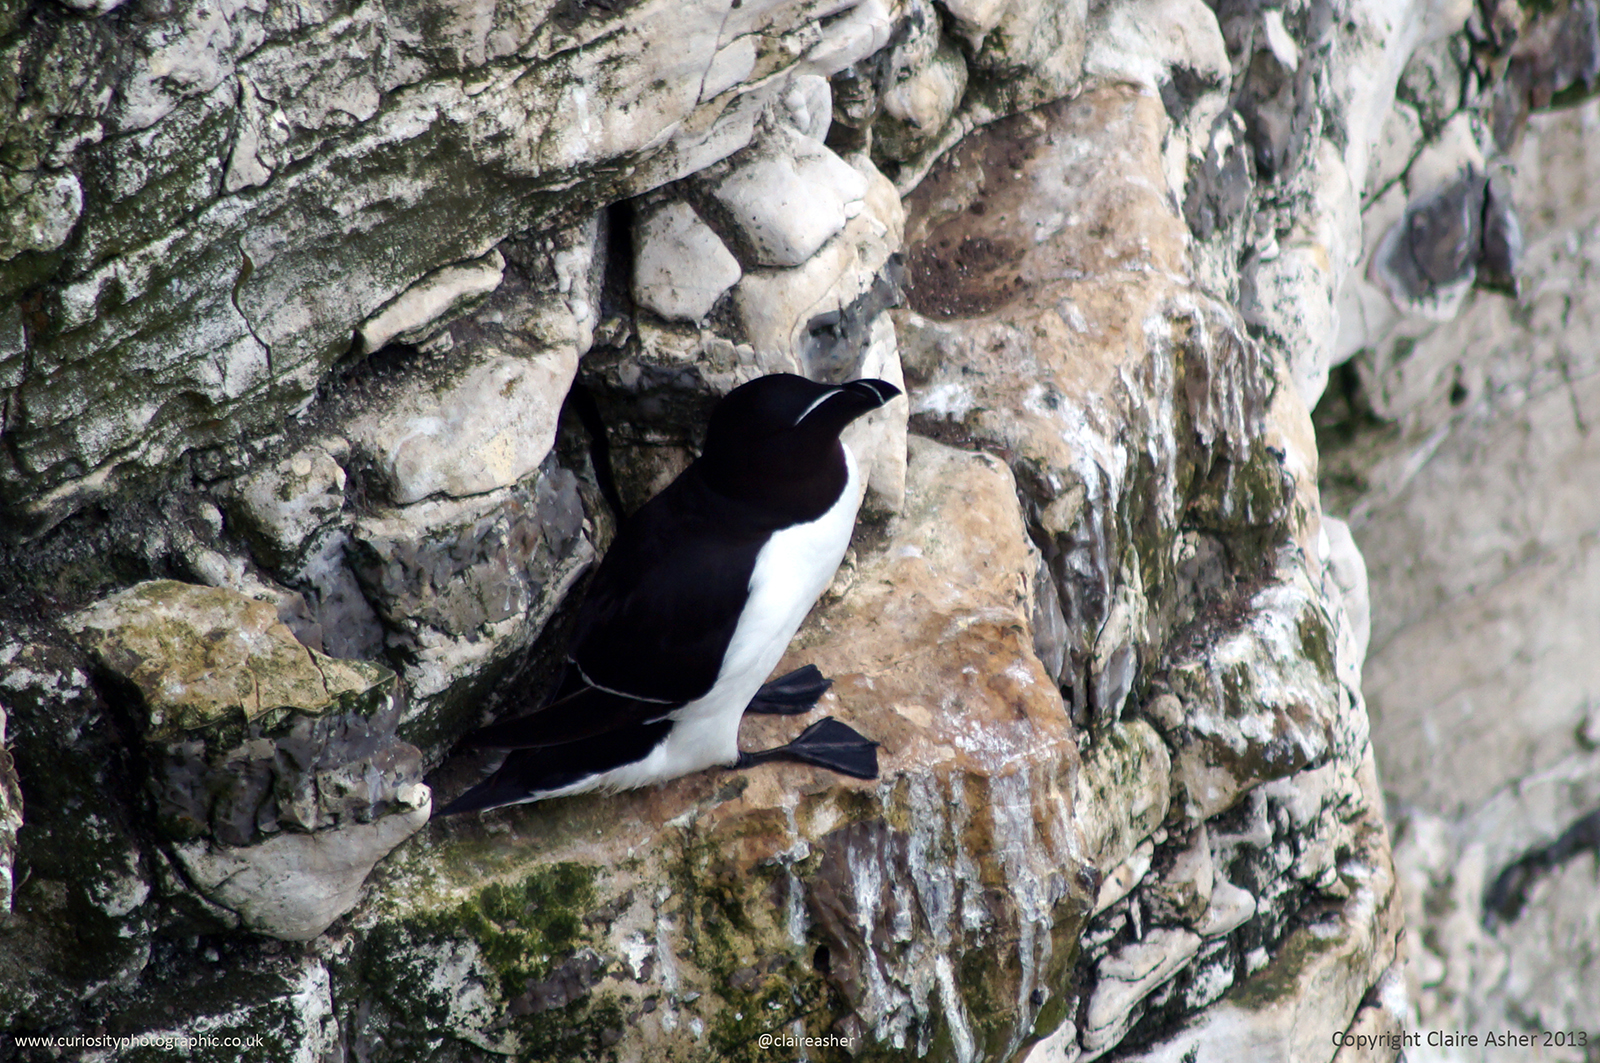 A Razorbill (Alca torda) photographed in Yorkshire, England in 2013.